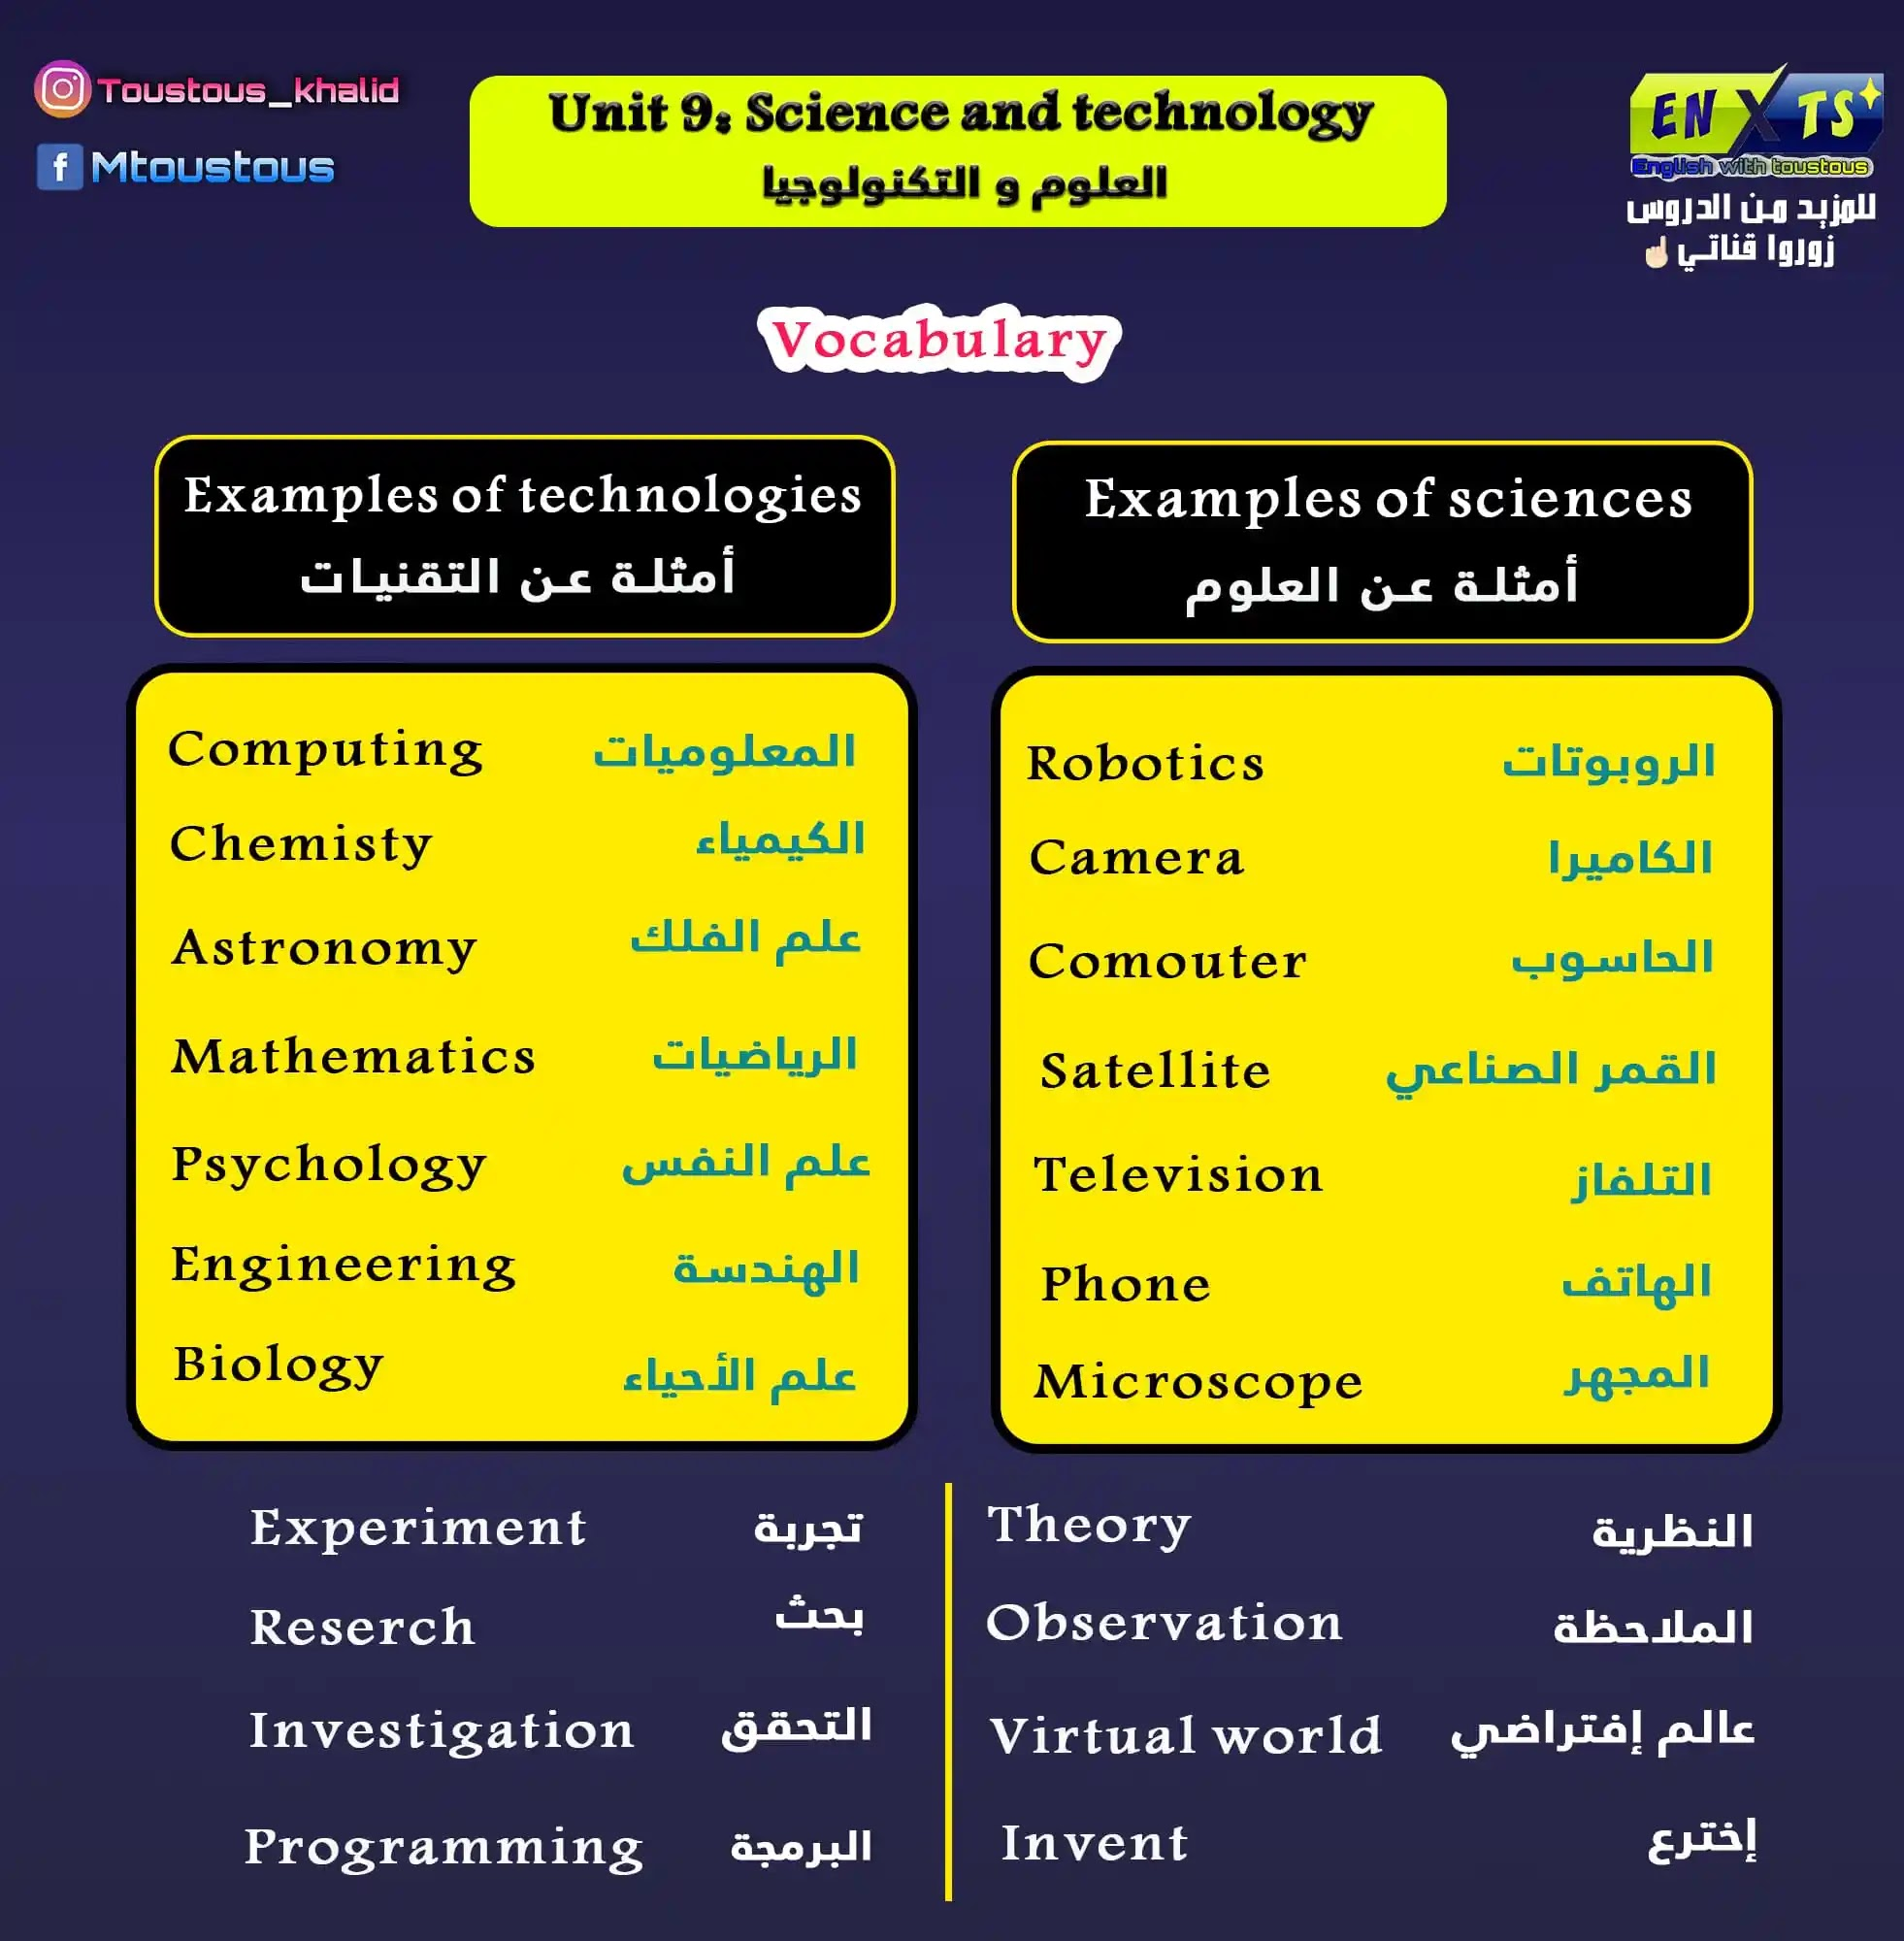 unit 9 Science and technology